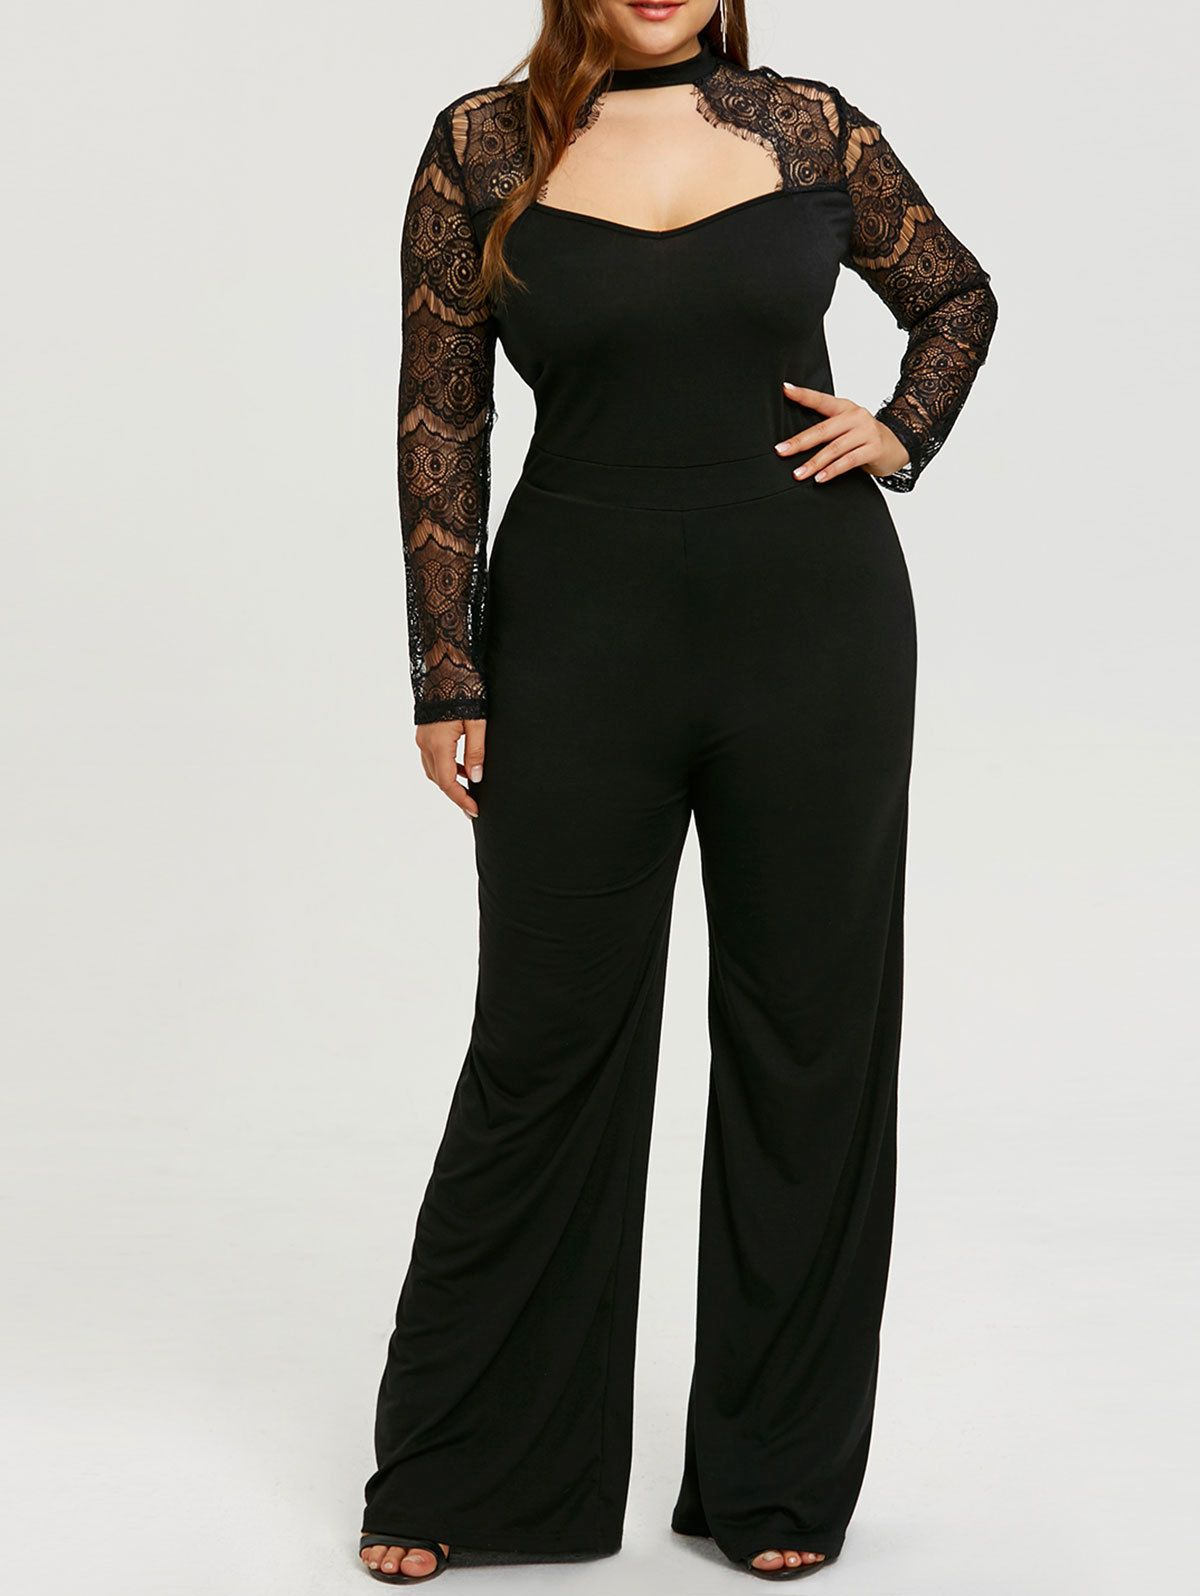 f9fa2041d526 Plus Size Xl-5Xl Women Rompers Jumpsuit Pants Tops Lace Sleeve Cut Out  Casual